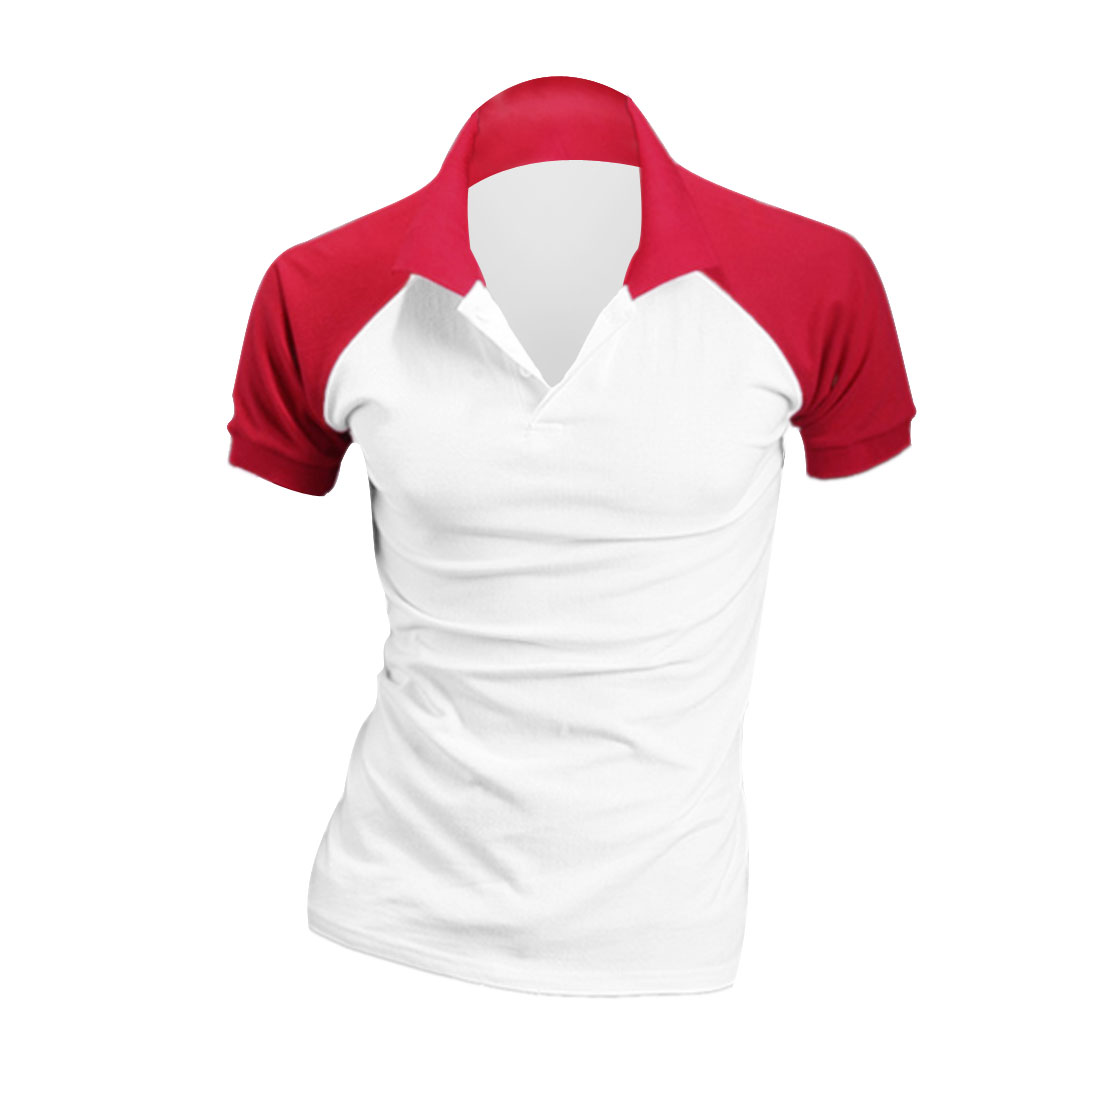 Men Short Sleeve Button Closure Up Polo Shirt Red White M